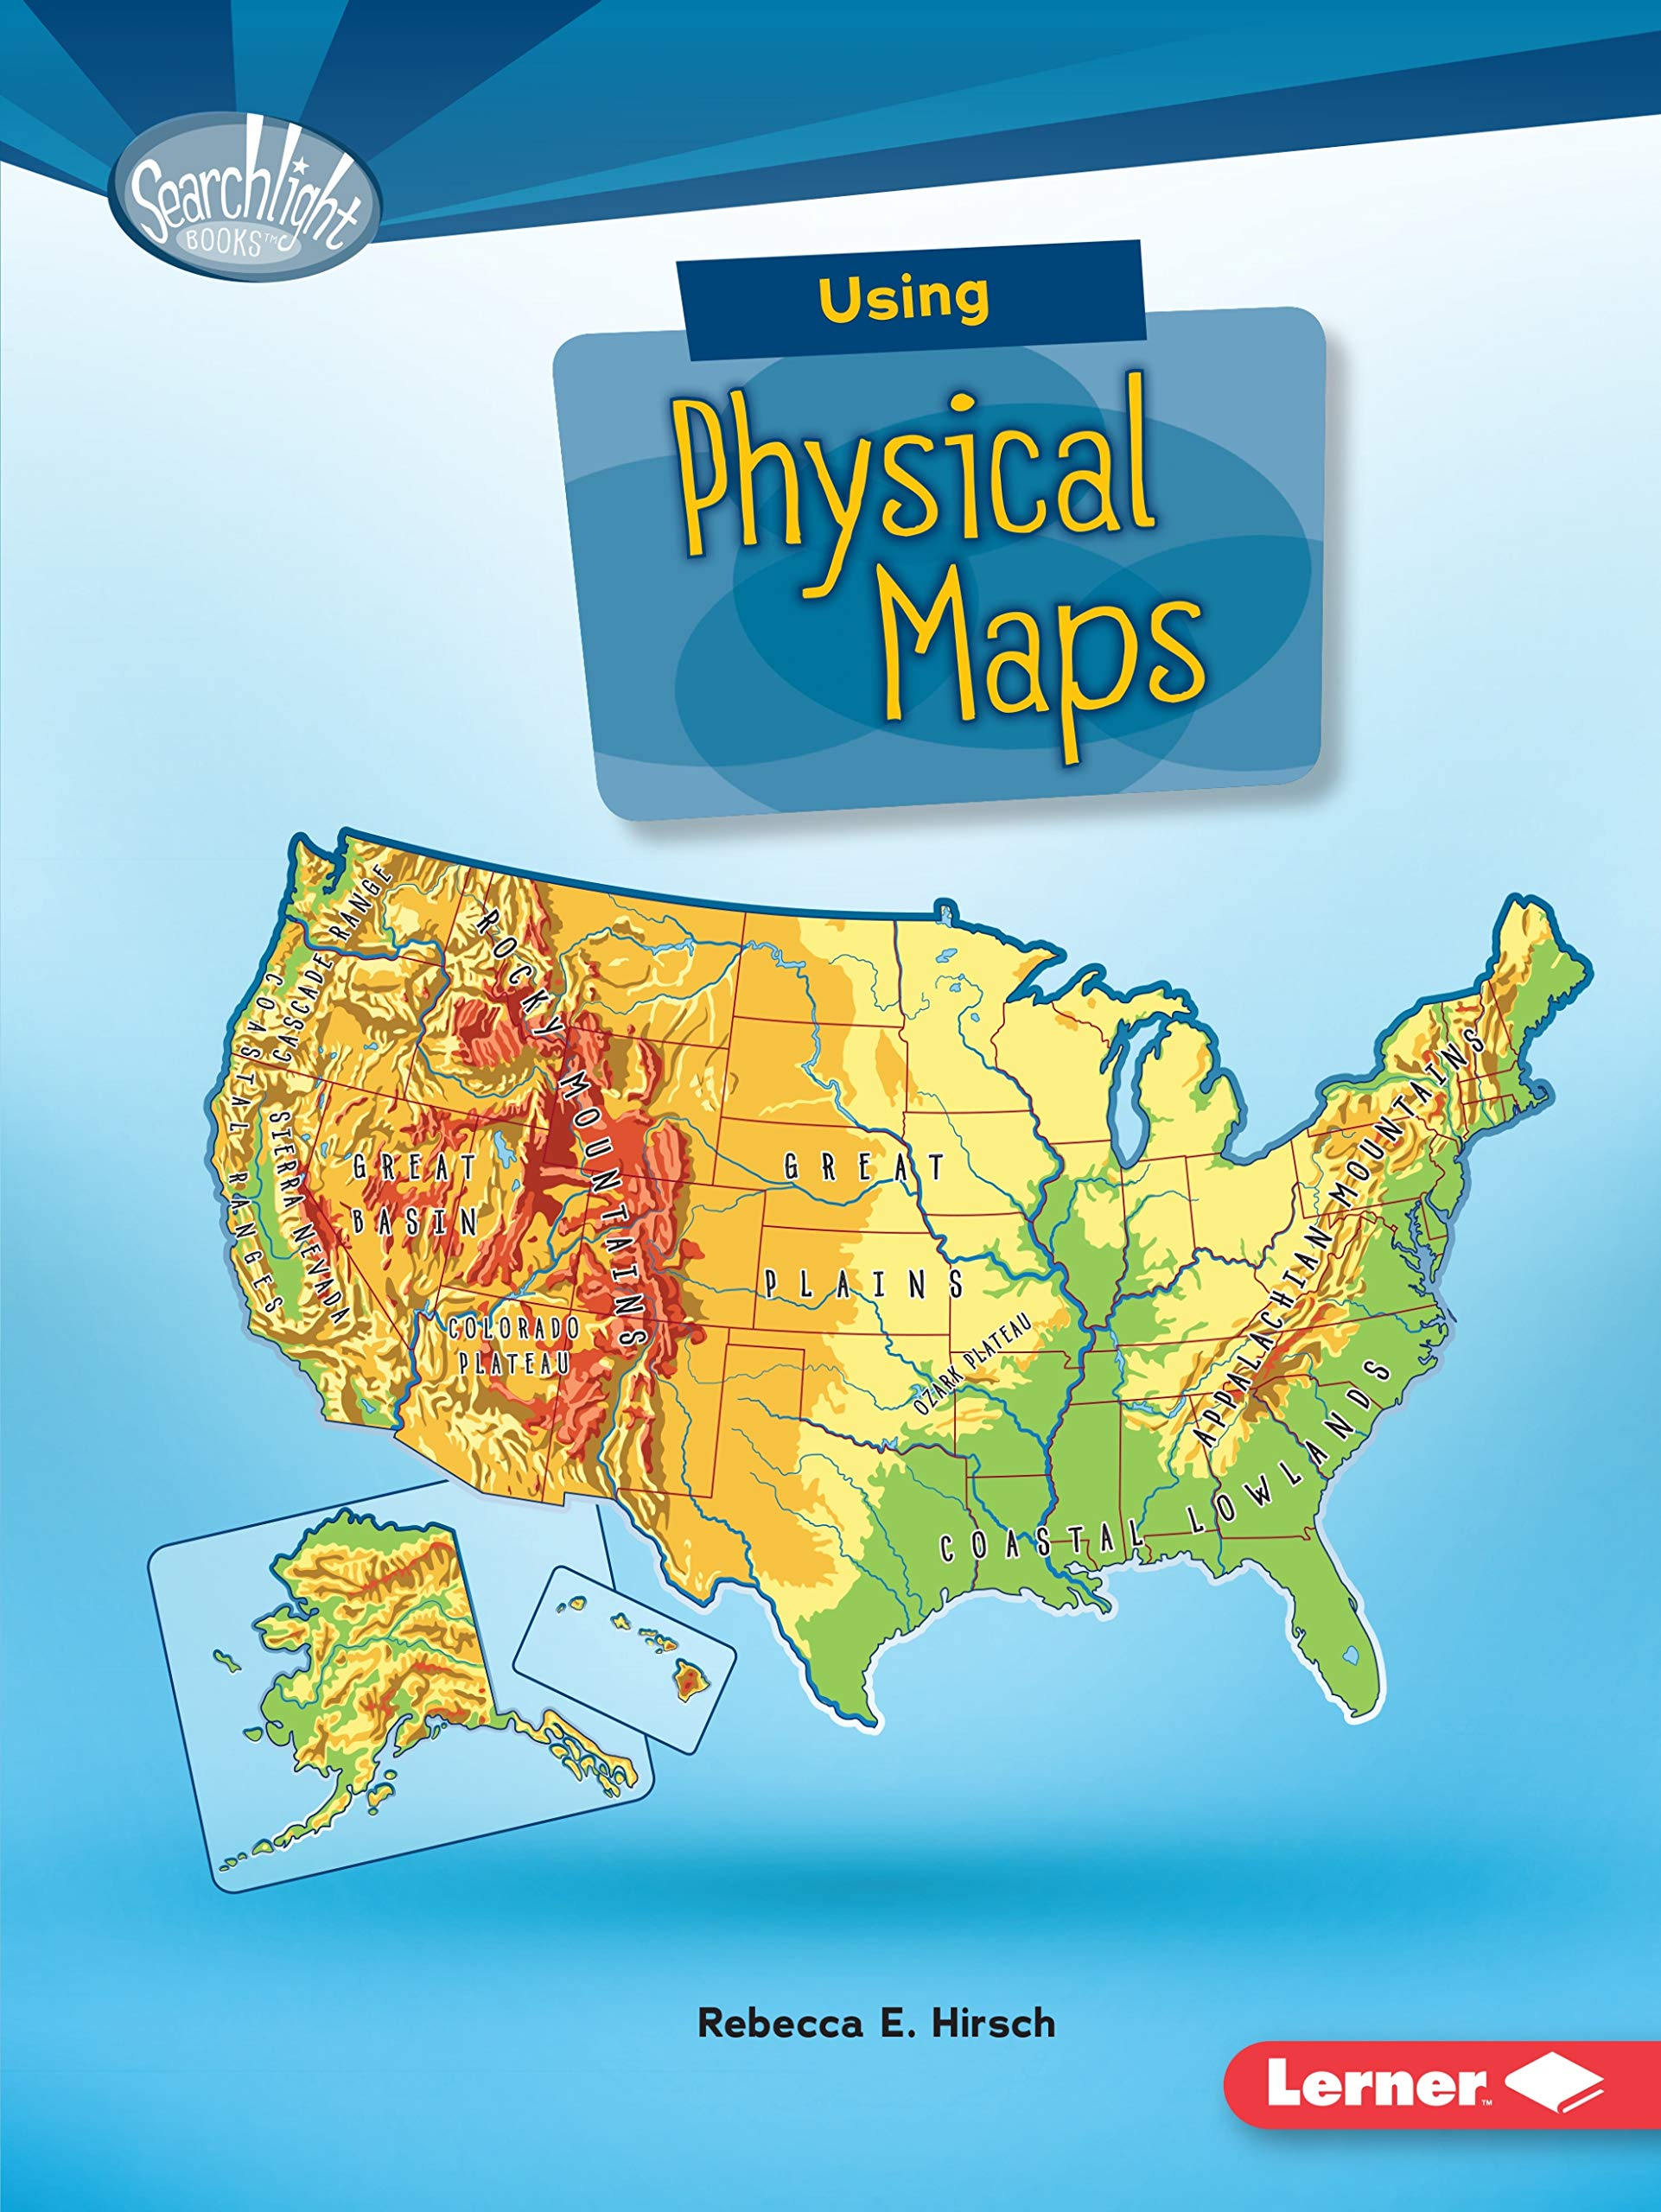 Using Physical Maps (Searchlight Books: What Do You Know About Maps on physical geography, physical weather, physical map o, physical land maps, physical texas map, physical world map, physical map usa, physical features of,